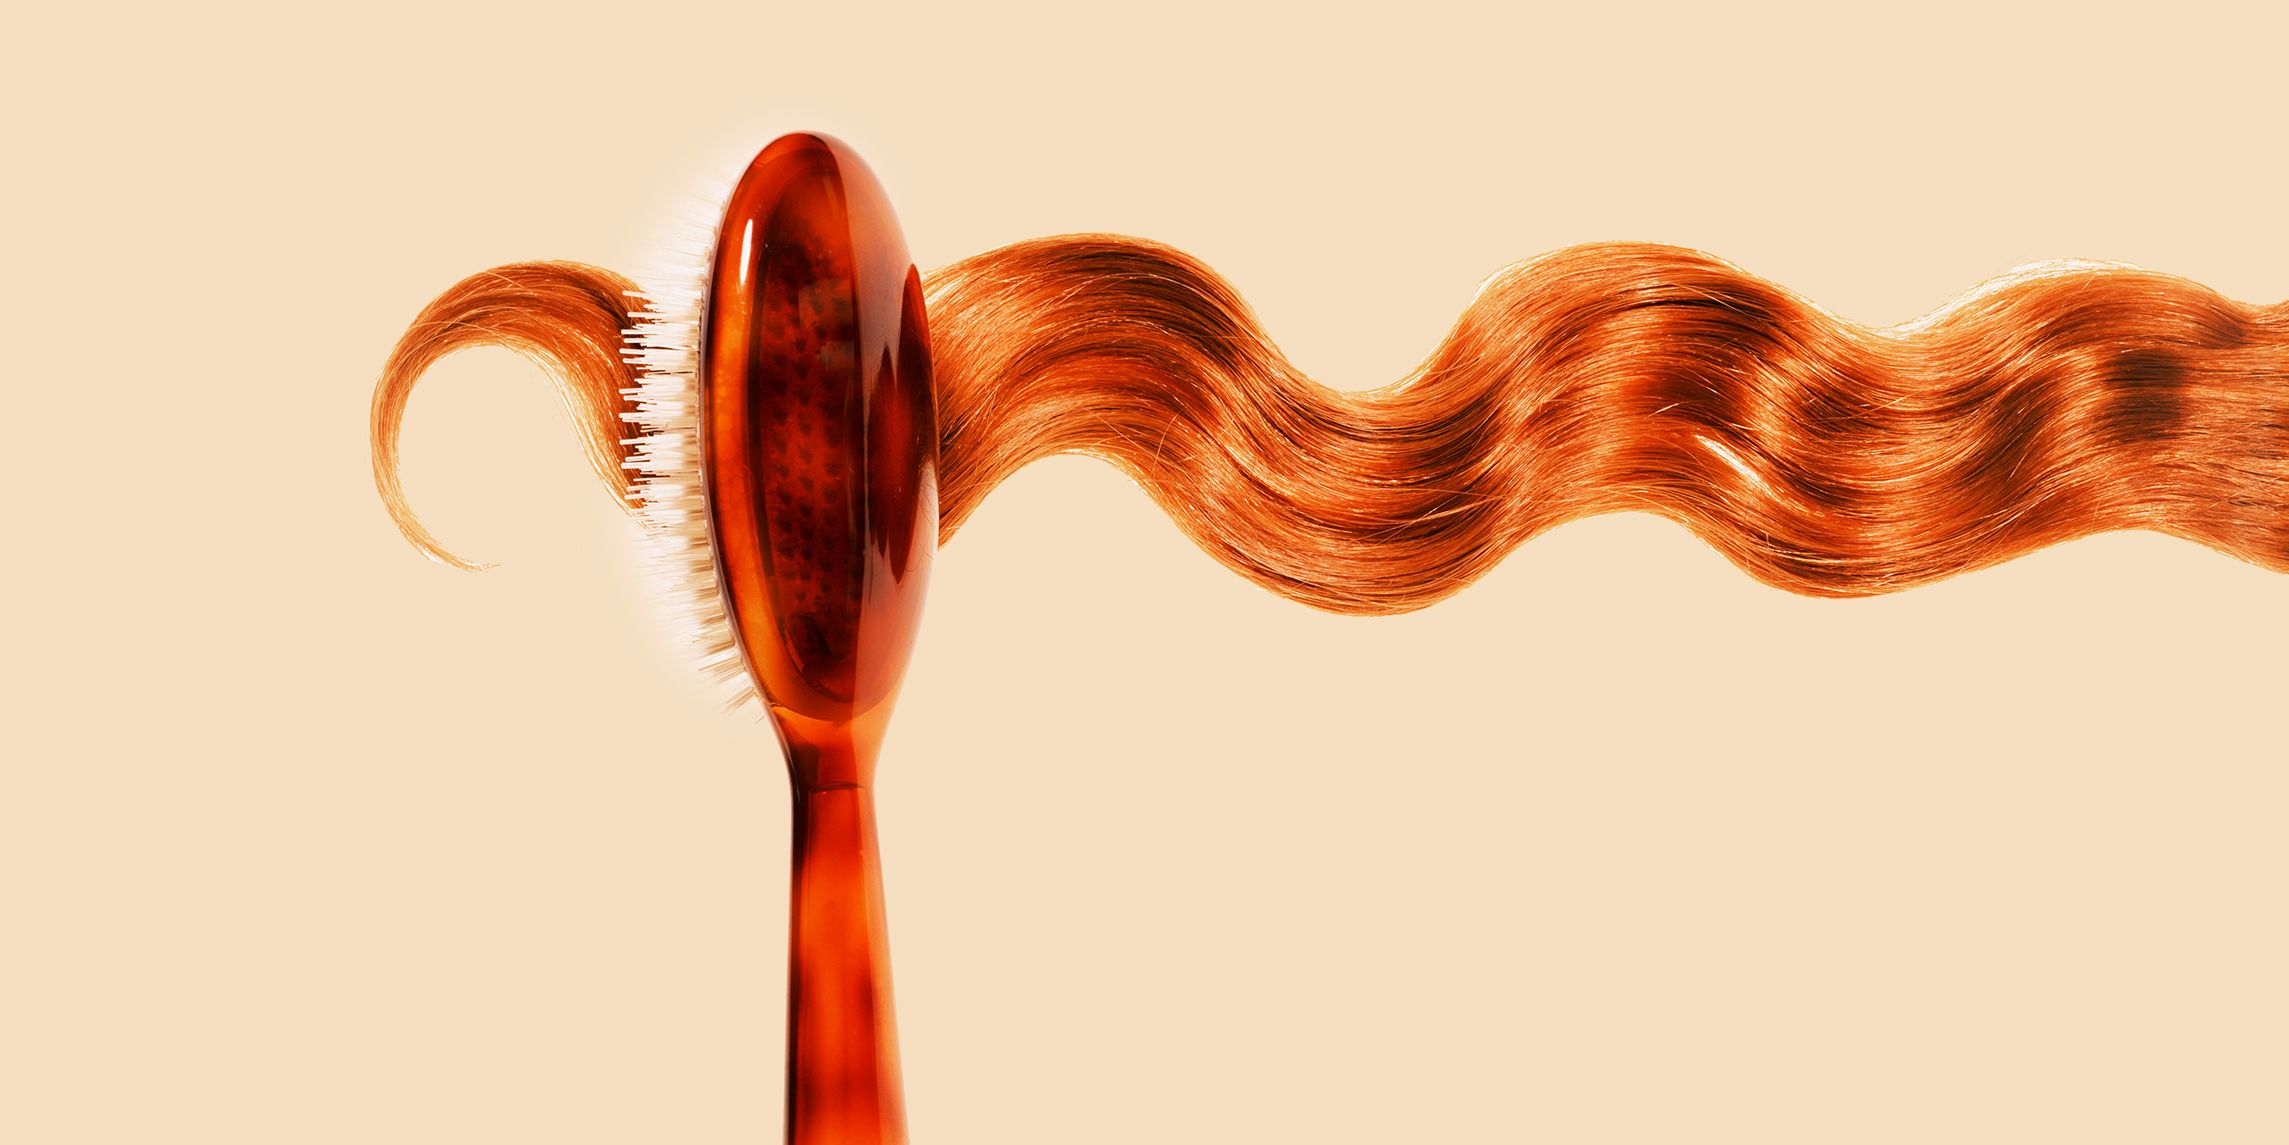 Best Days To Cut Hair For Growth And Thickness